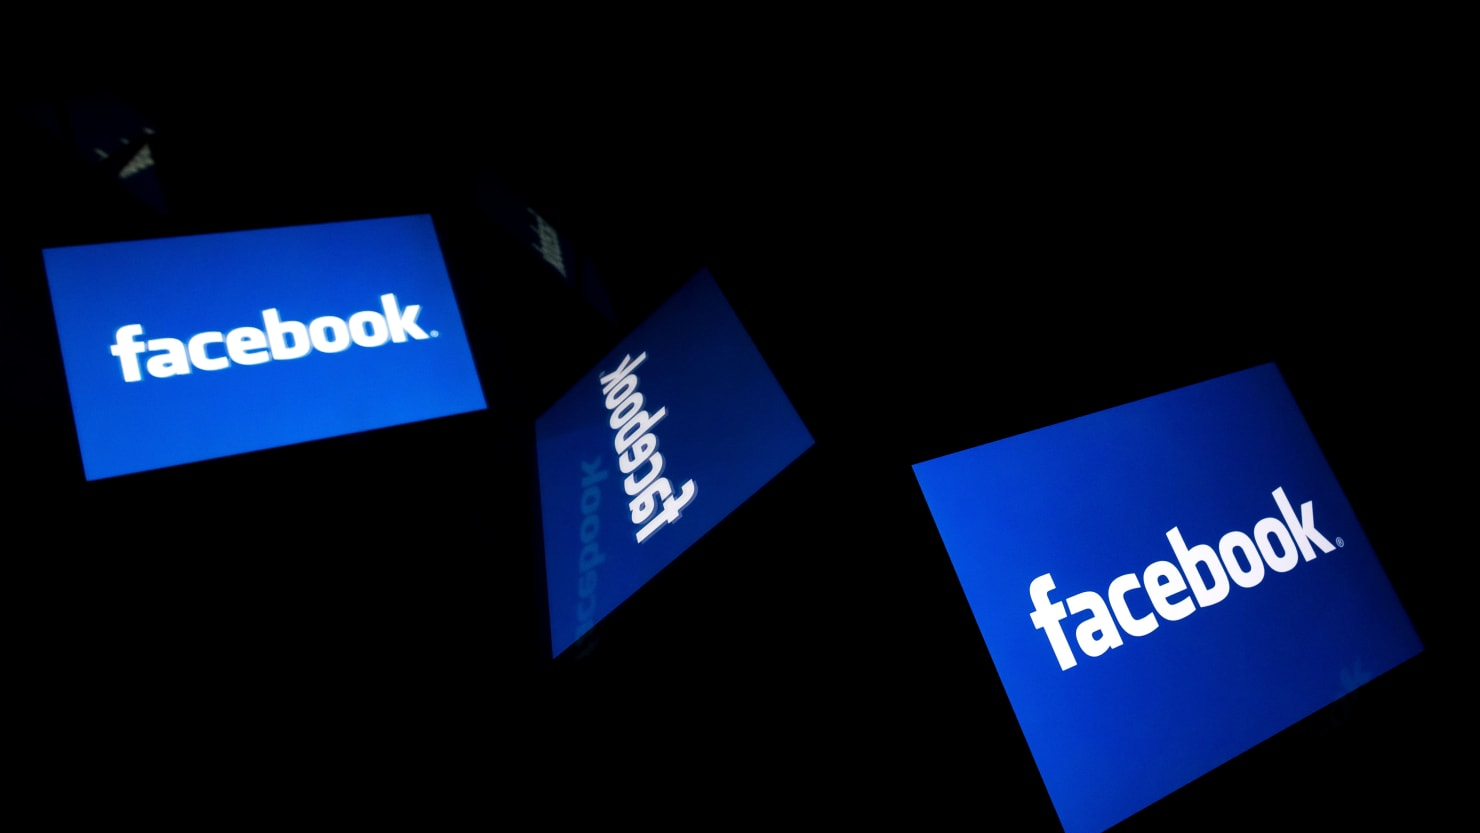 Facebook Removed More Than 2 Billion Fake Accounts in First Three Months of 2019